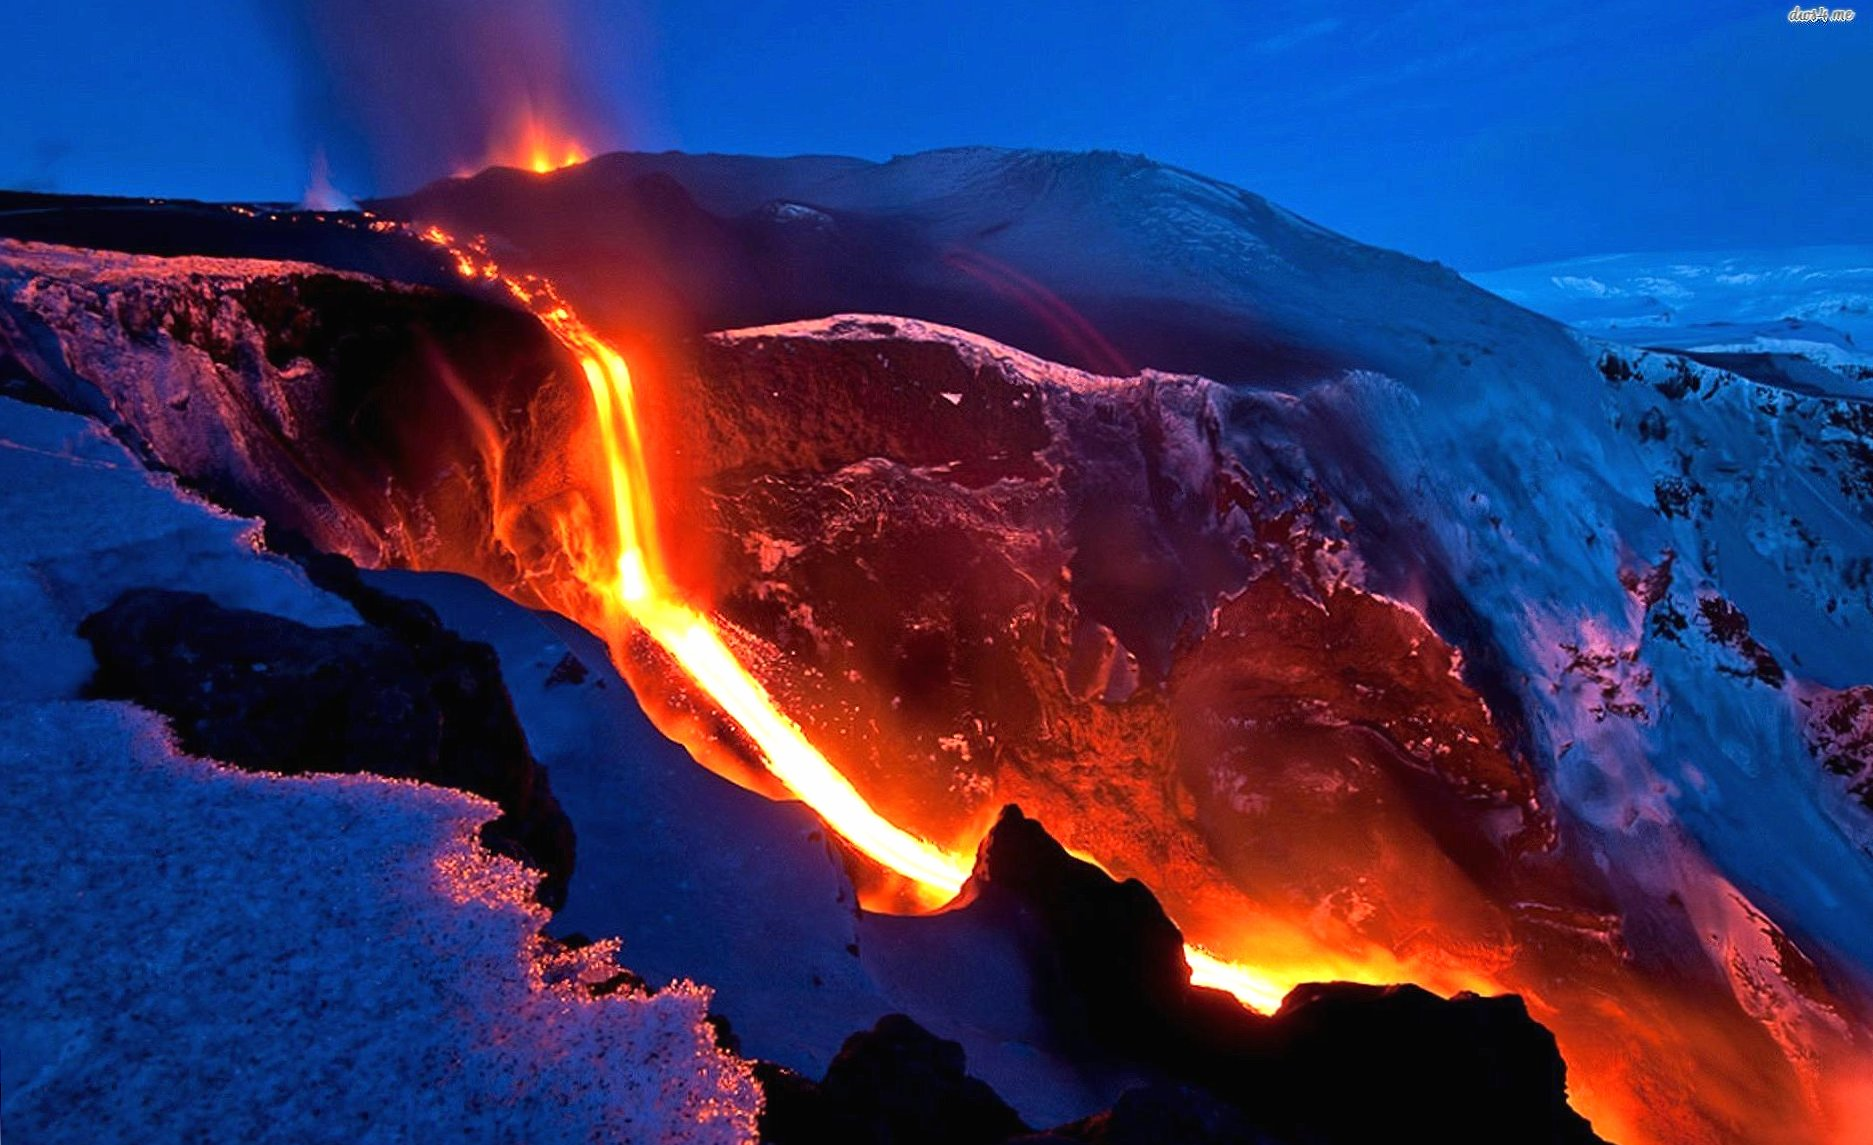 River of lava wallpapers HD quality